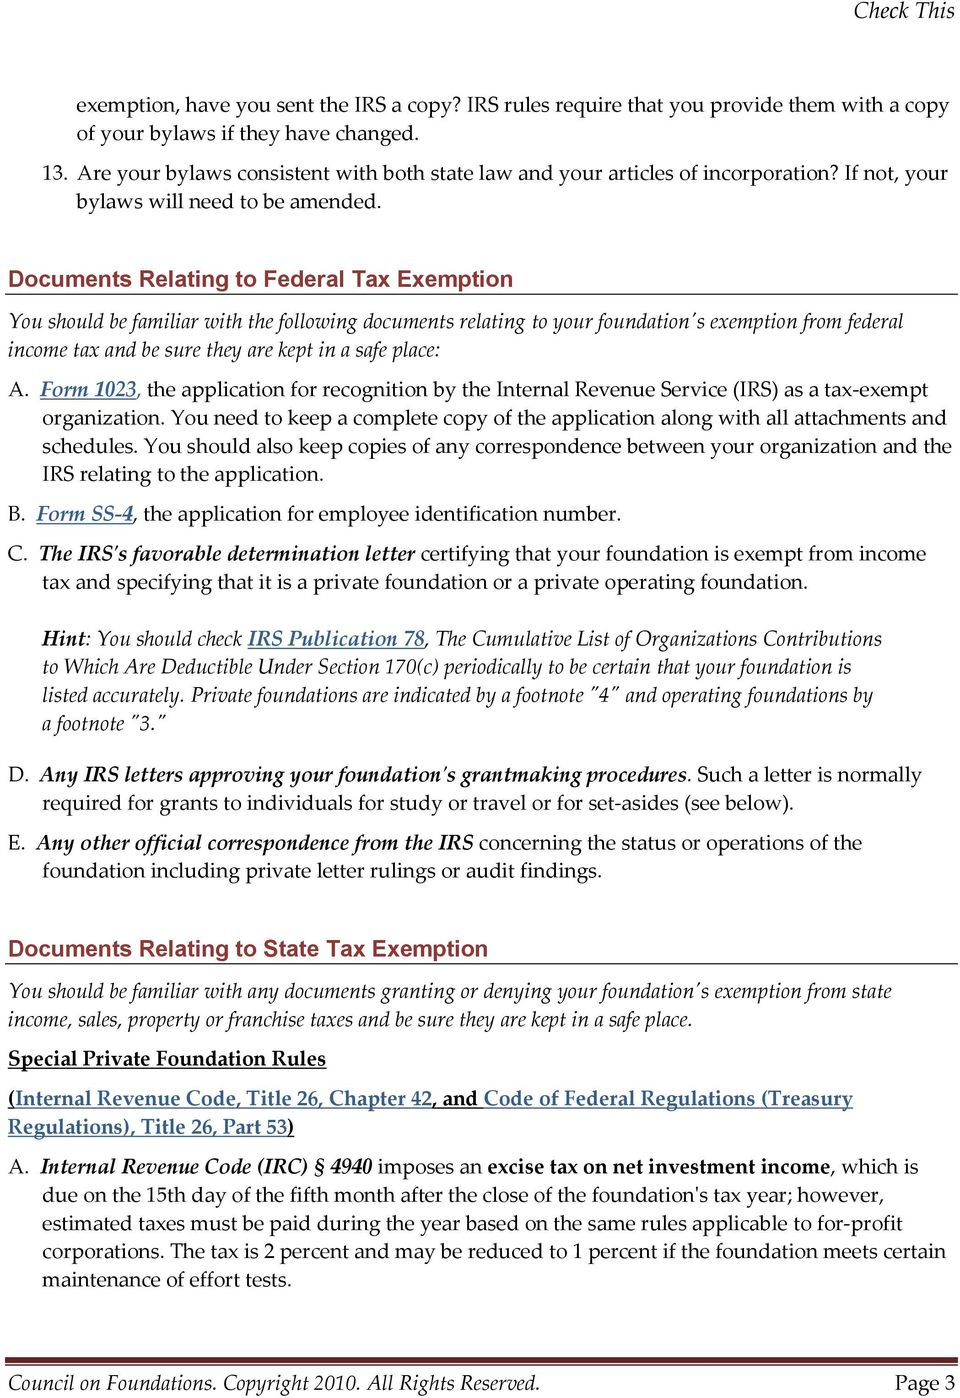 Documents Relating to Federal Tax Exemption You should be familiar with the following documents relating to your foundation's exemption from federal income tax and be sure they are kept in a safe